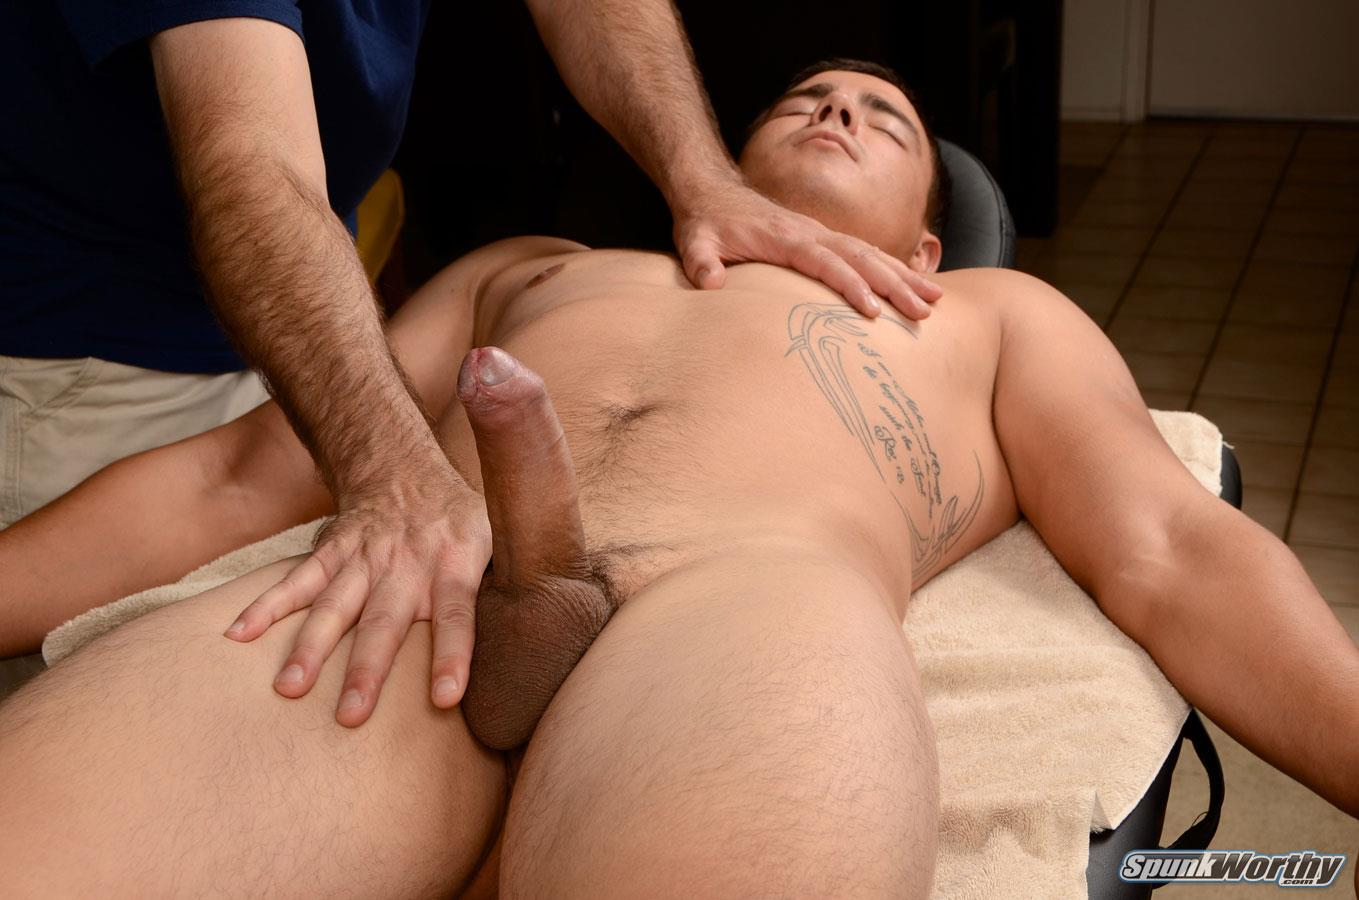 gay massage dominans porno jeanette